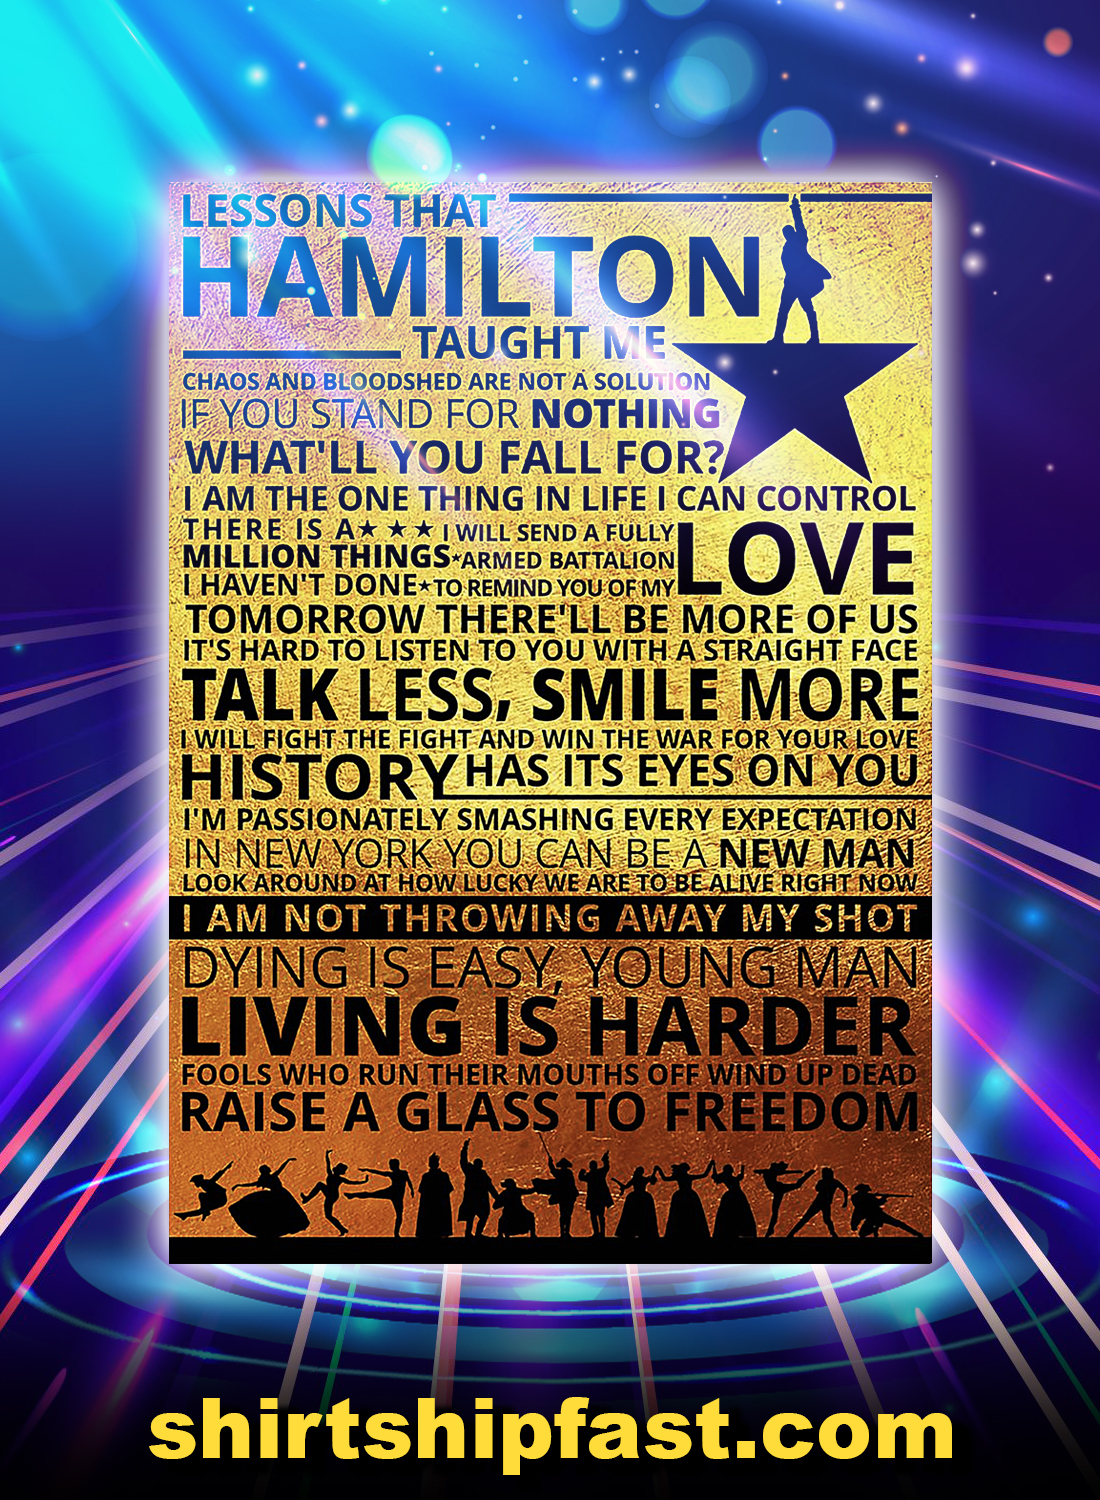 Poster Lessons hamilton taught me - A4